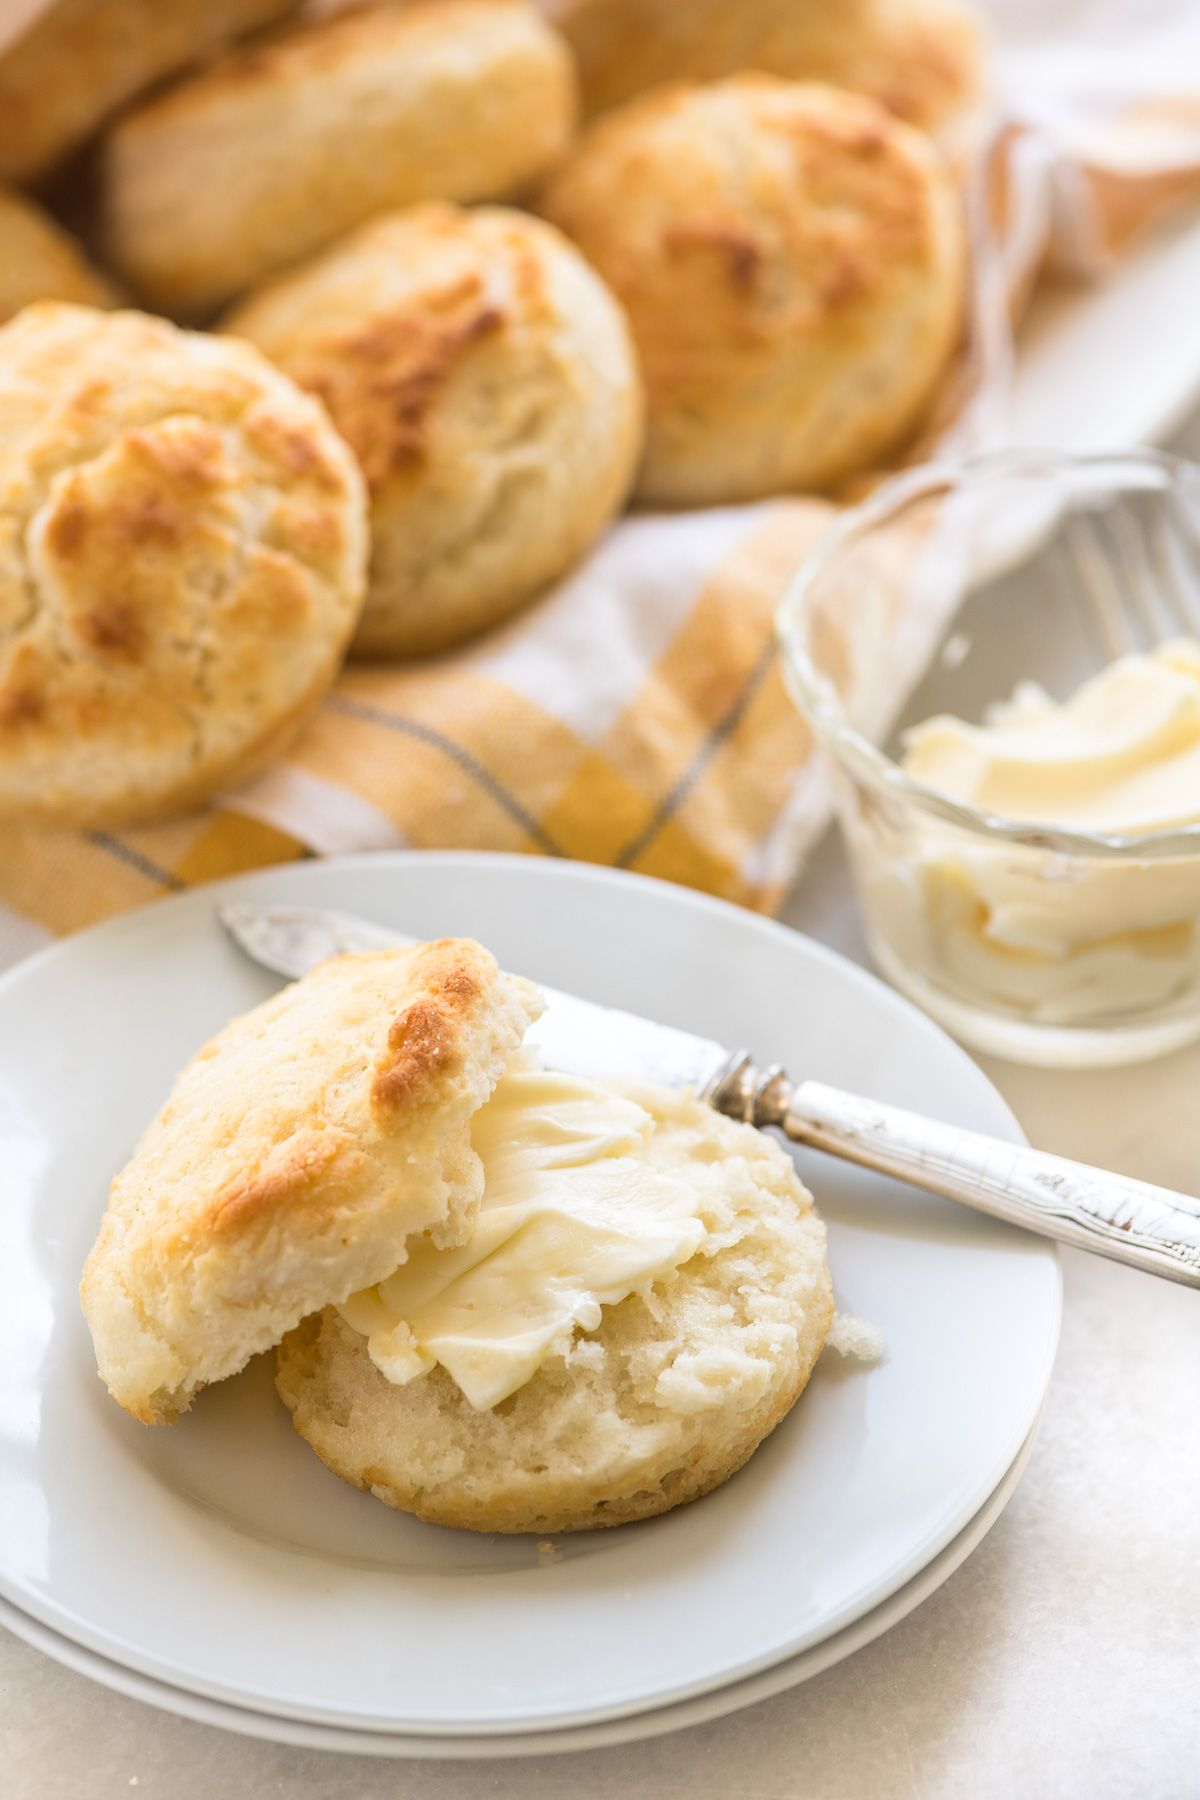 3 Ingredient Biscuits Made With Self Rising Flour And Buttermilk Are Fluffy Flaky Biscuits Made In M Flaky Biscuits Easy Biscuit Recipe Easy Homemade Biscuits